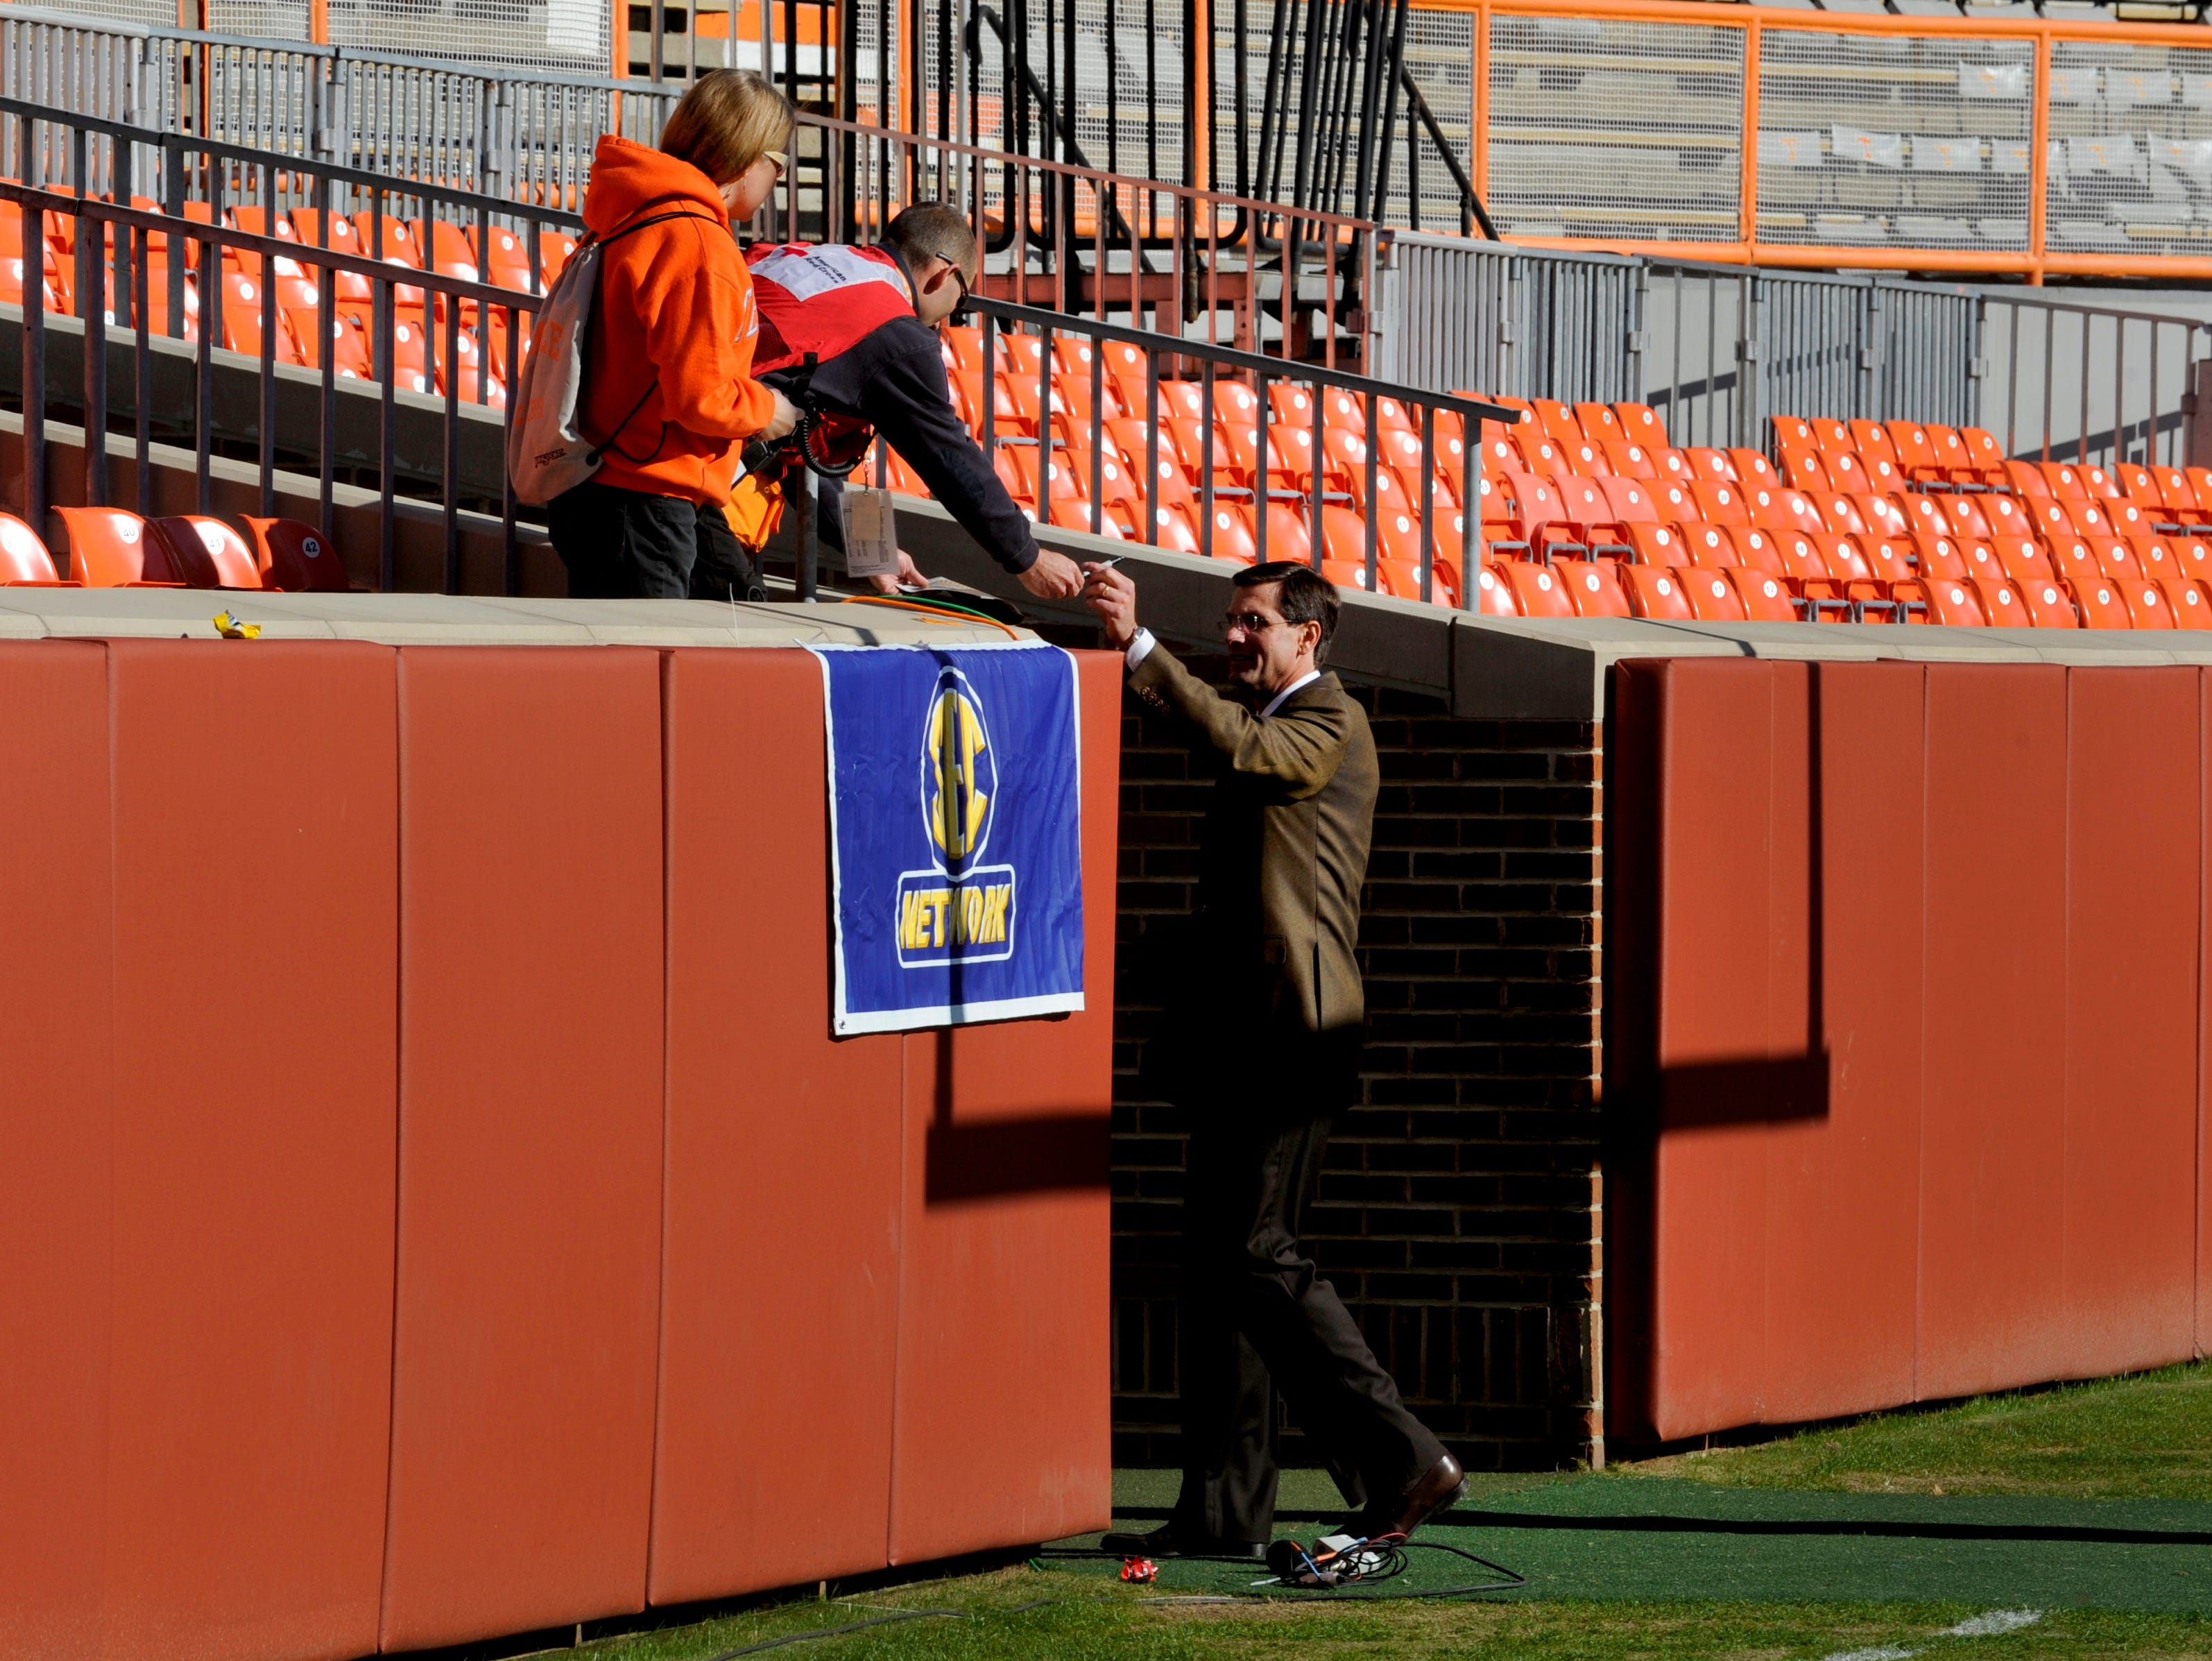 Tennessee head coach Derek Dooley signs an autograph for a fan during his pre game walk around the field prior to their game against Missouri at Neyland Stadium Saturday, Nov. 10, 2012.